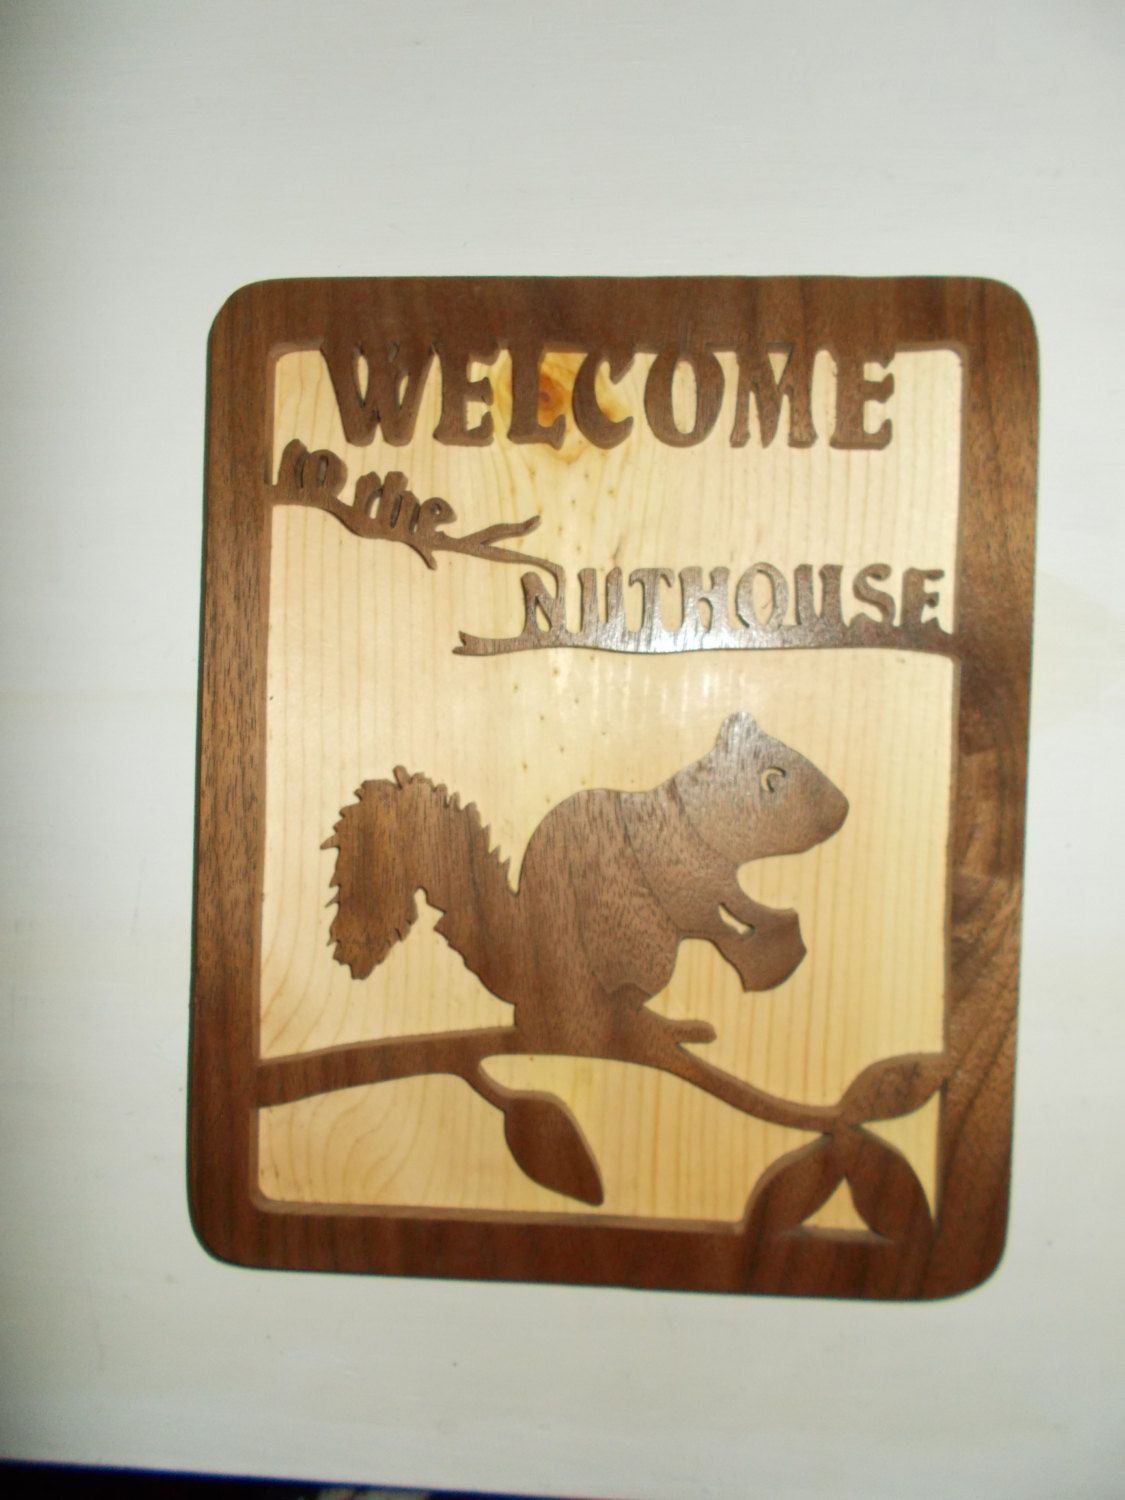 Welcome sign home decor wall plaque | Handmade Etsy shops and ...